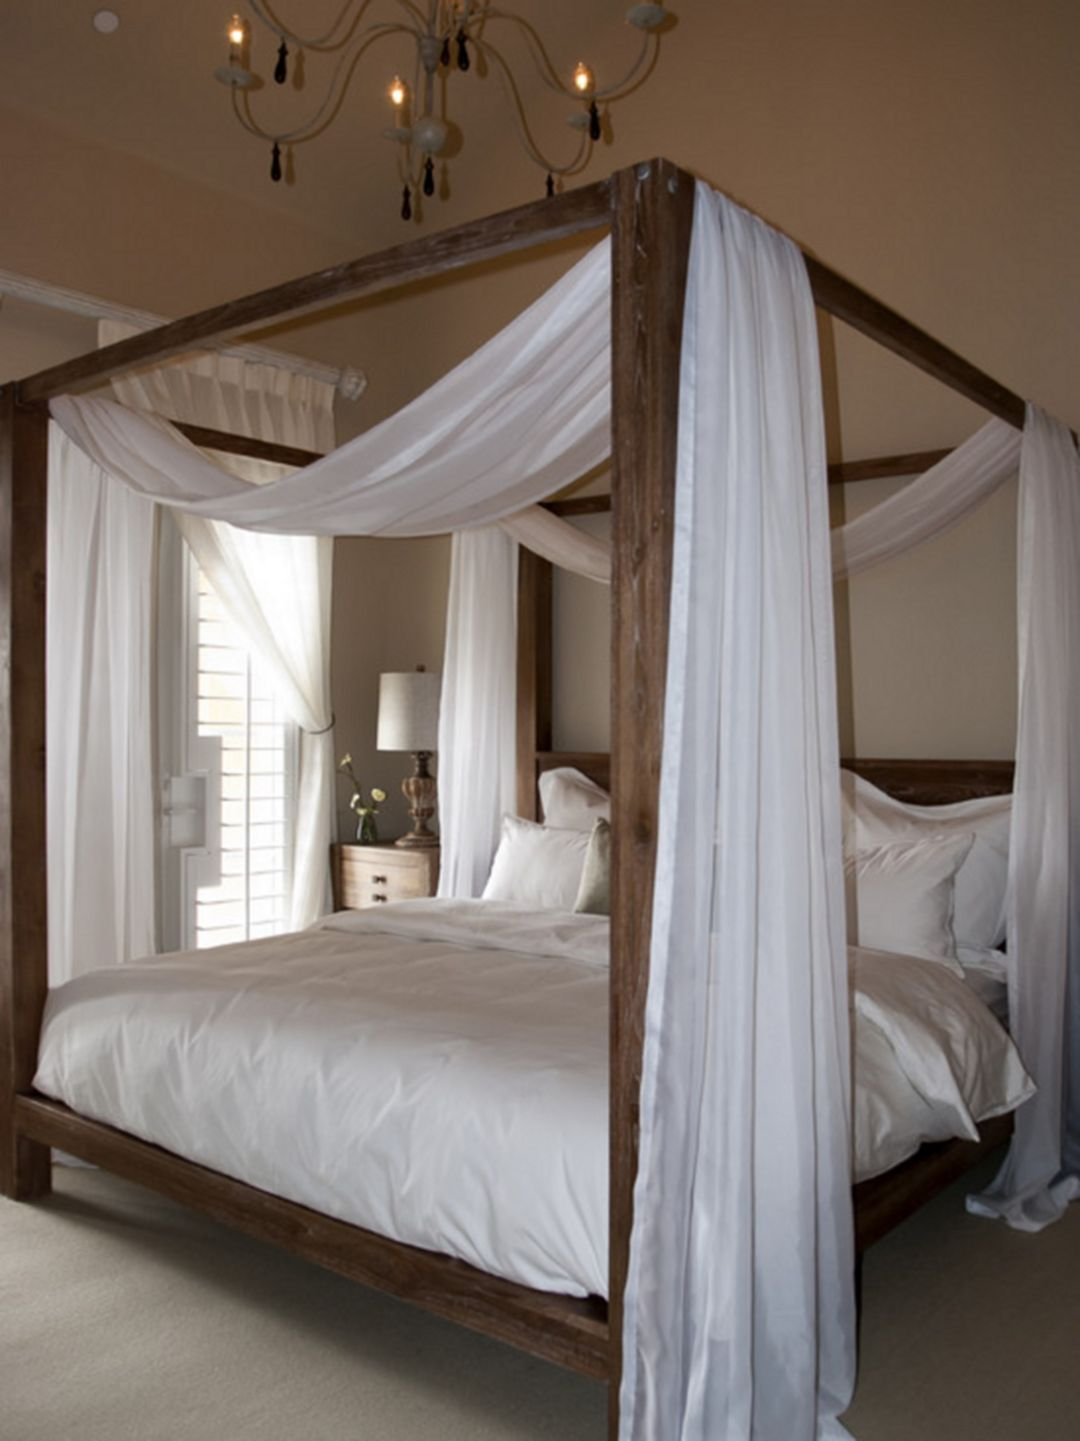 Cool 150 Amazing Romantic Master Bedroom Design Ideas You Have To Try Https Decoor Net 150 Amazing Romantic M Remodel Bedroom Canopy Bedroom Canopy Bed Frame